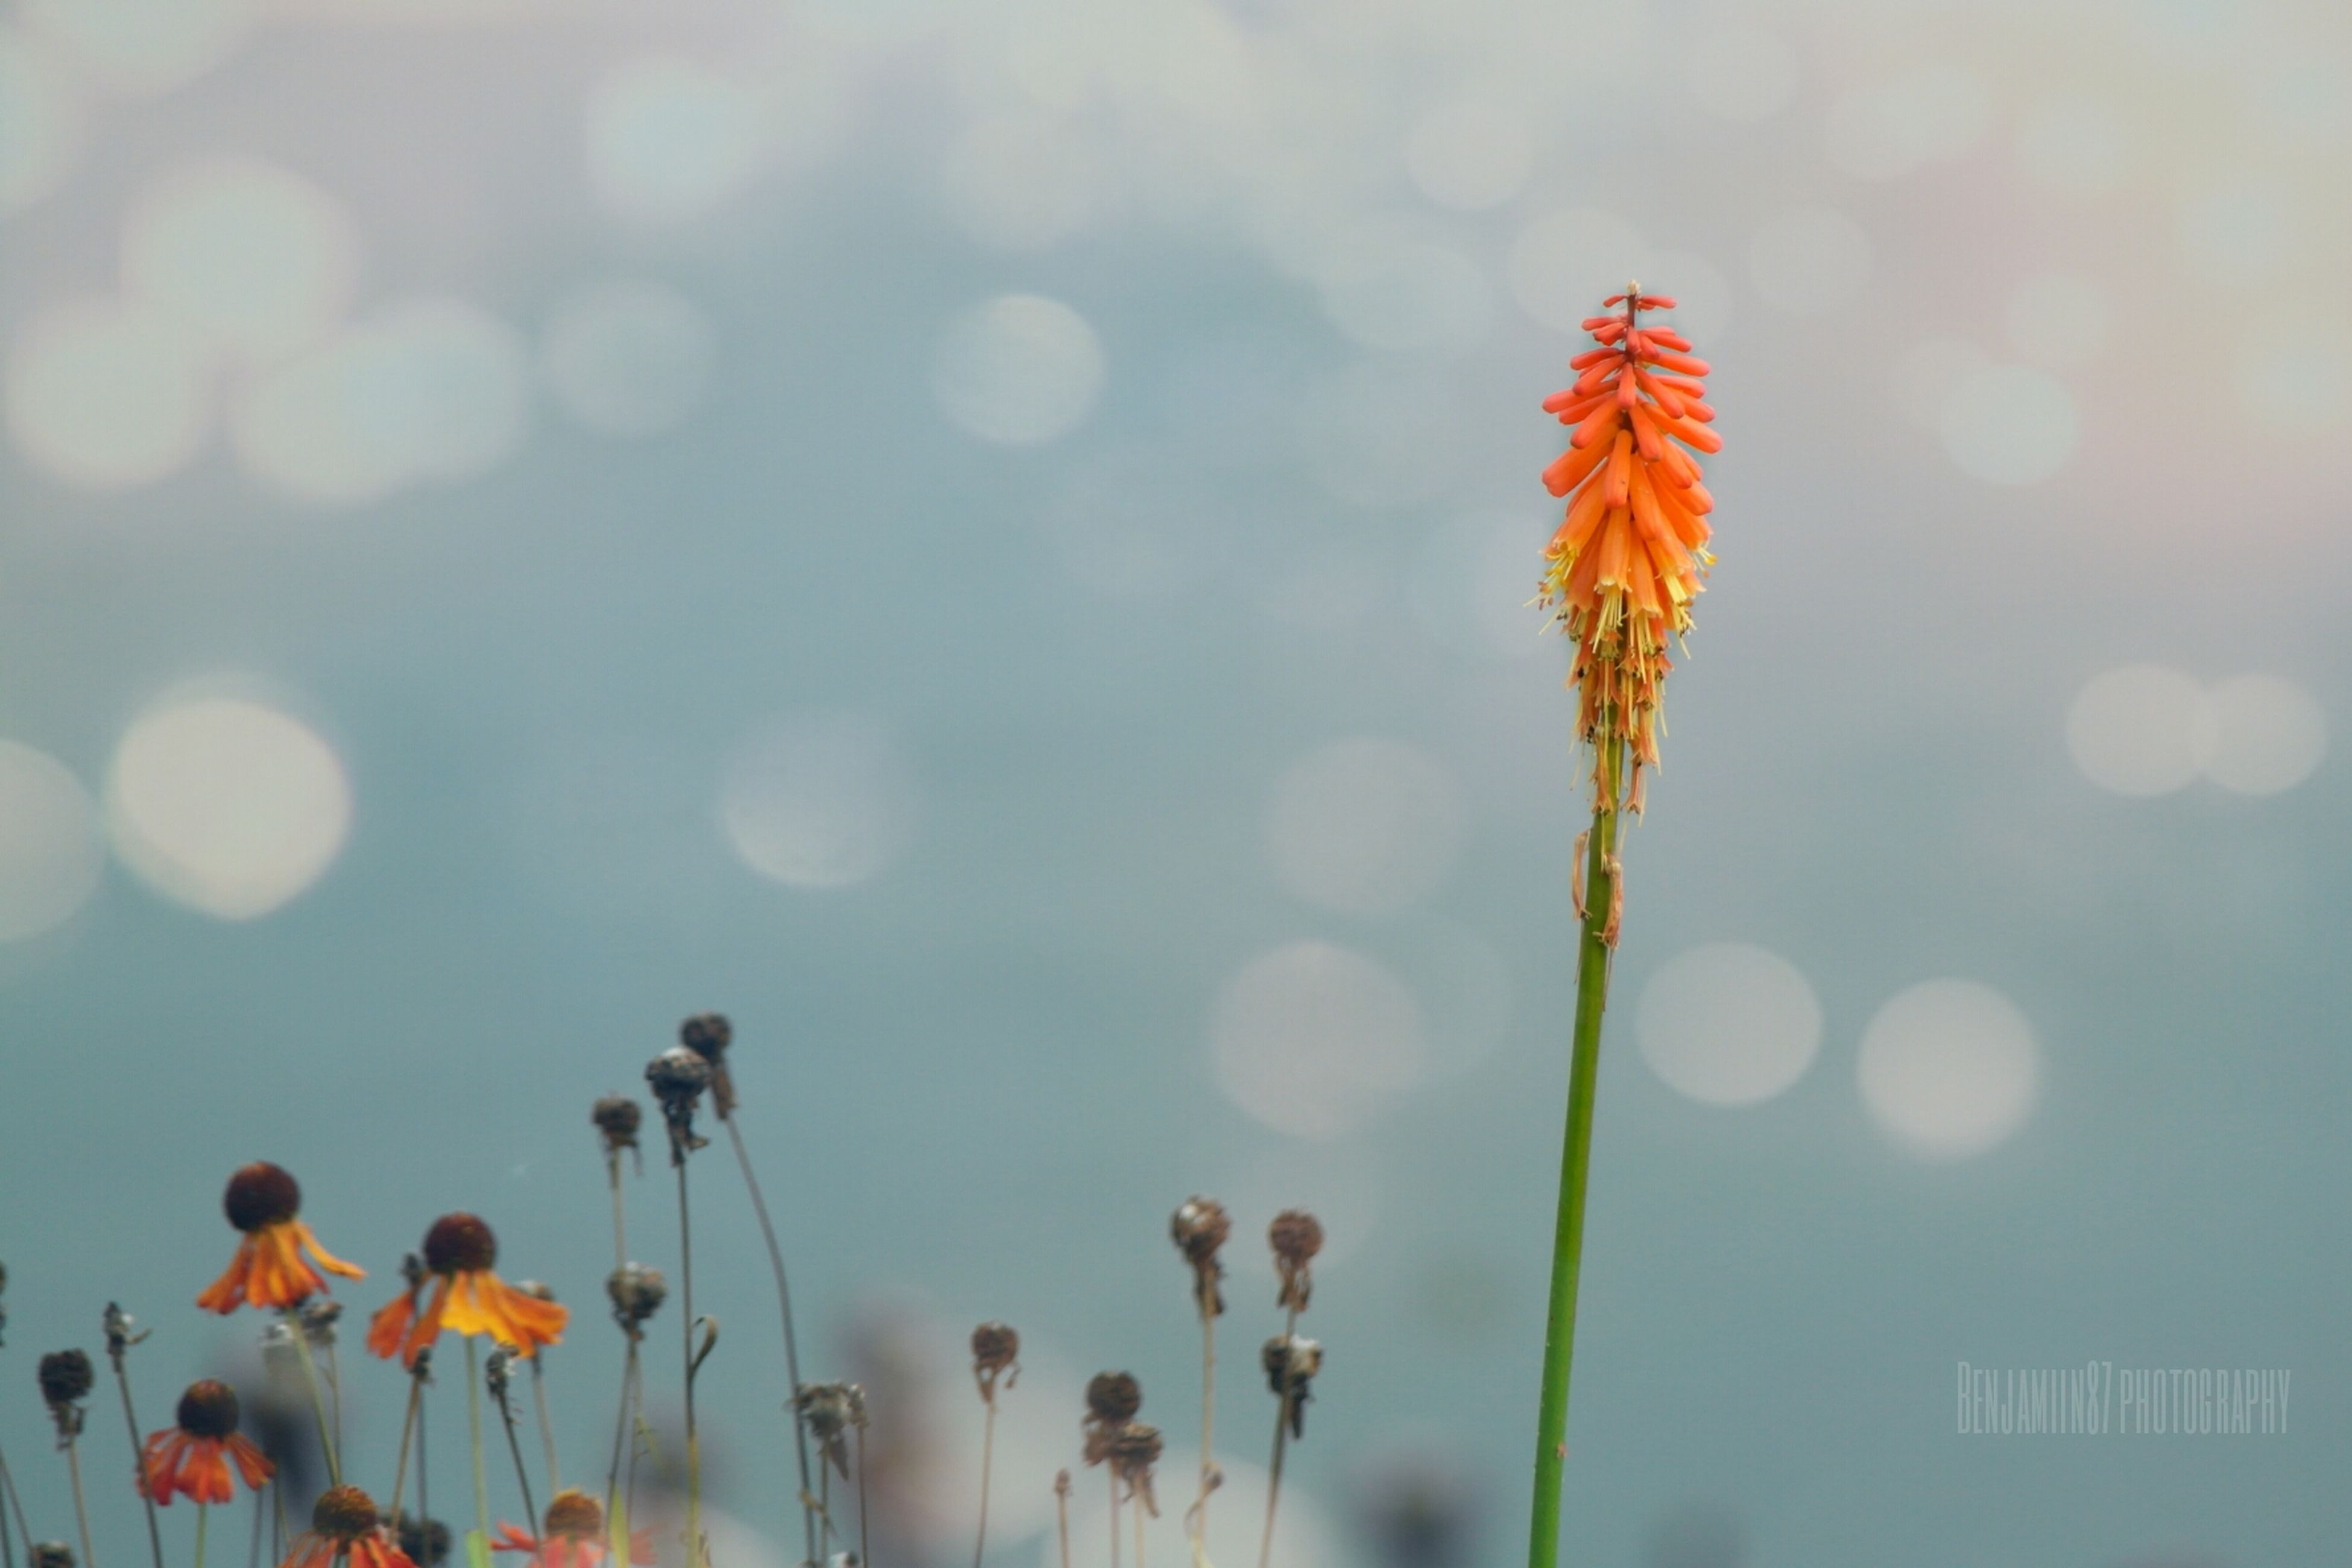 flower, fragility, freshness, growth, beauty in nature, plant, focus on foreground, nature, petal, red, flower head, stem, field, blooming, sky, poppy, close-up, outdoors, low angle view, animal themes